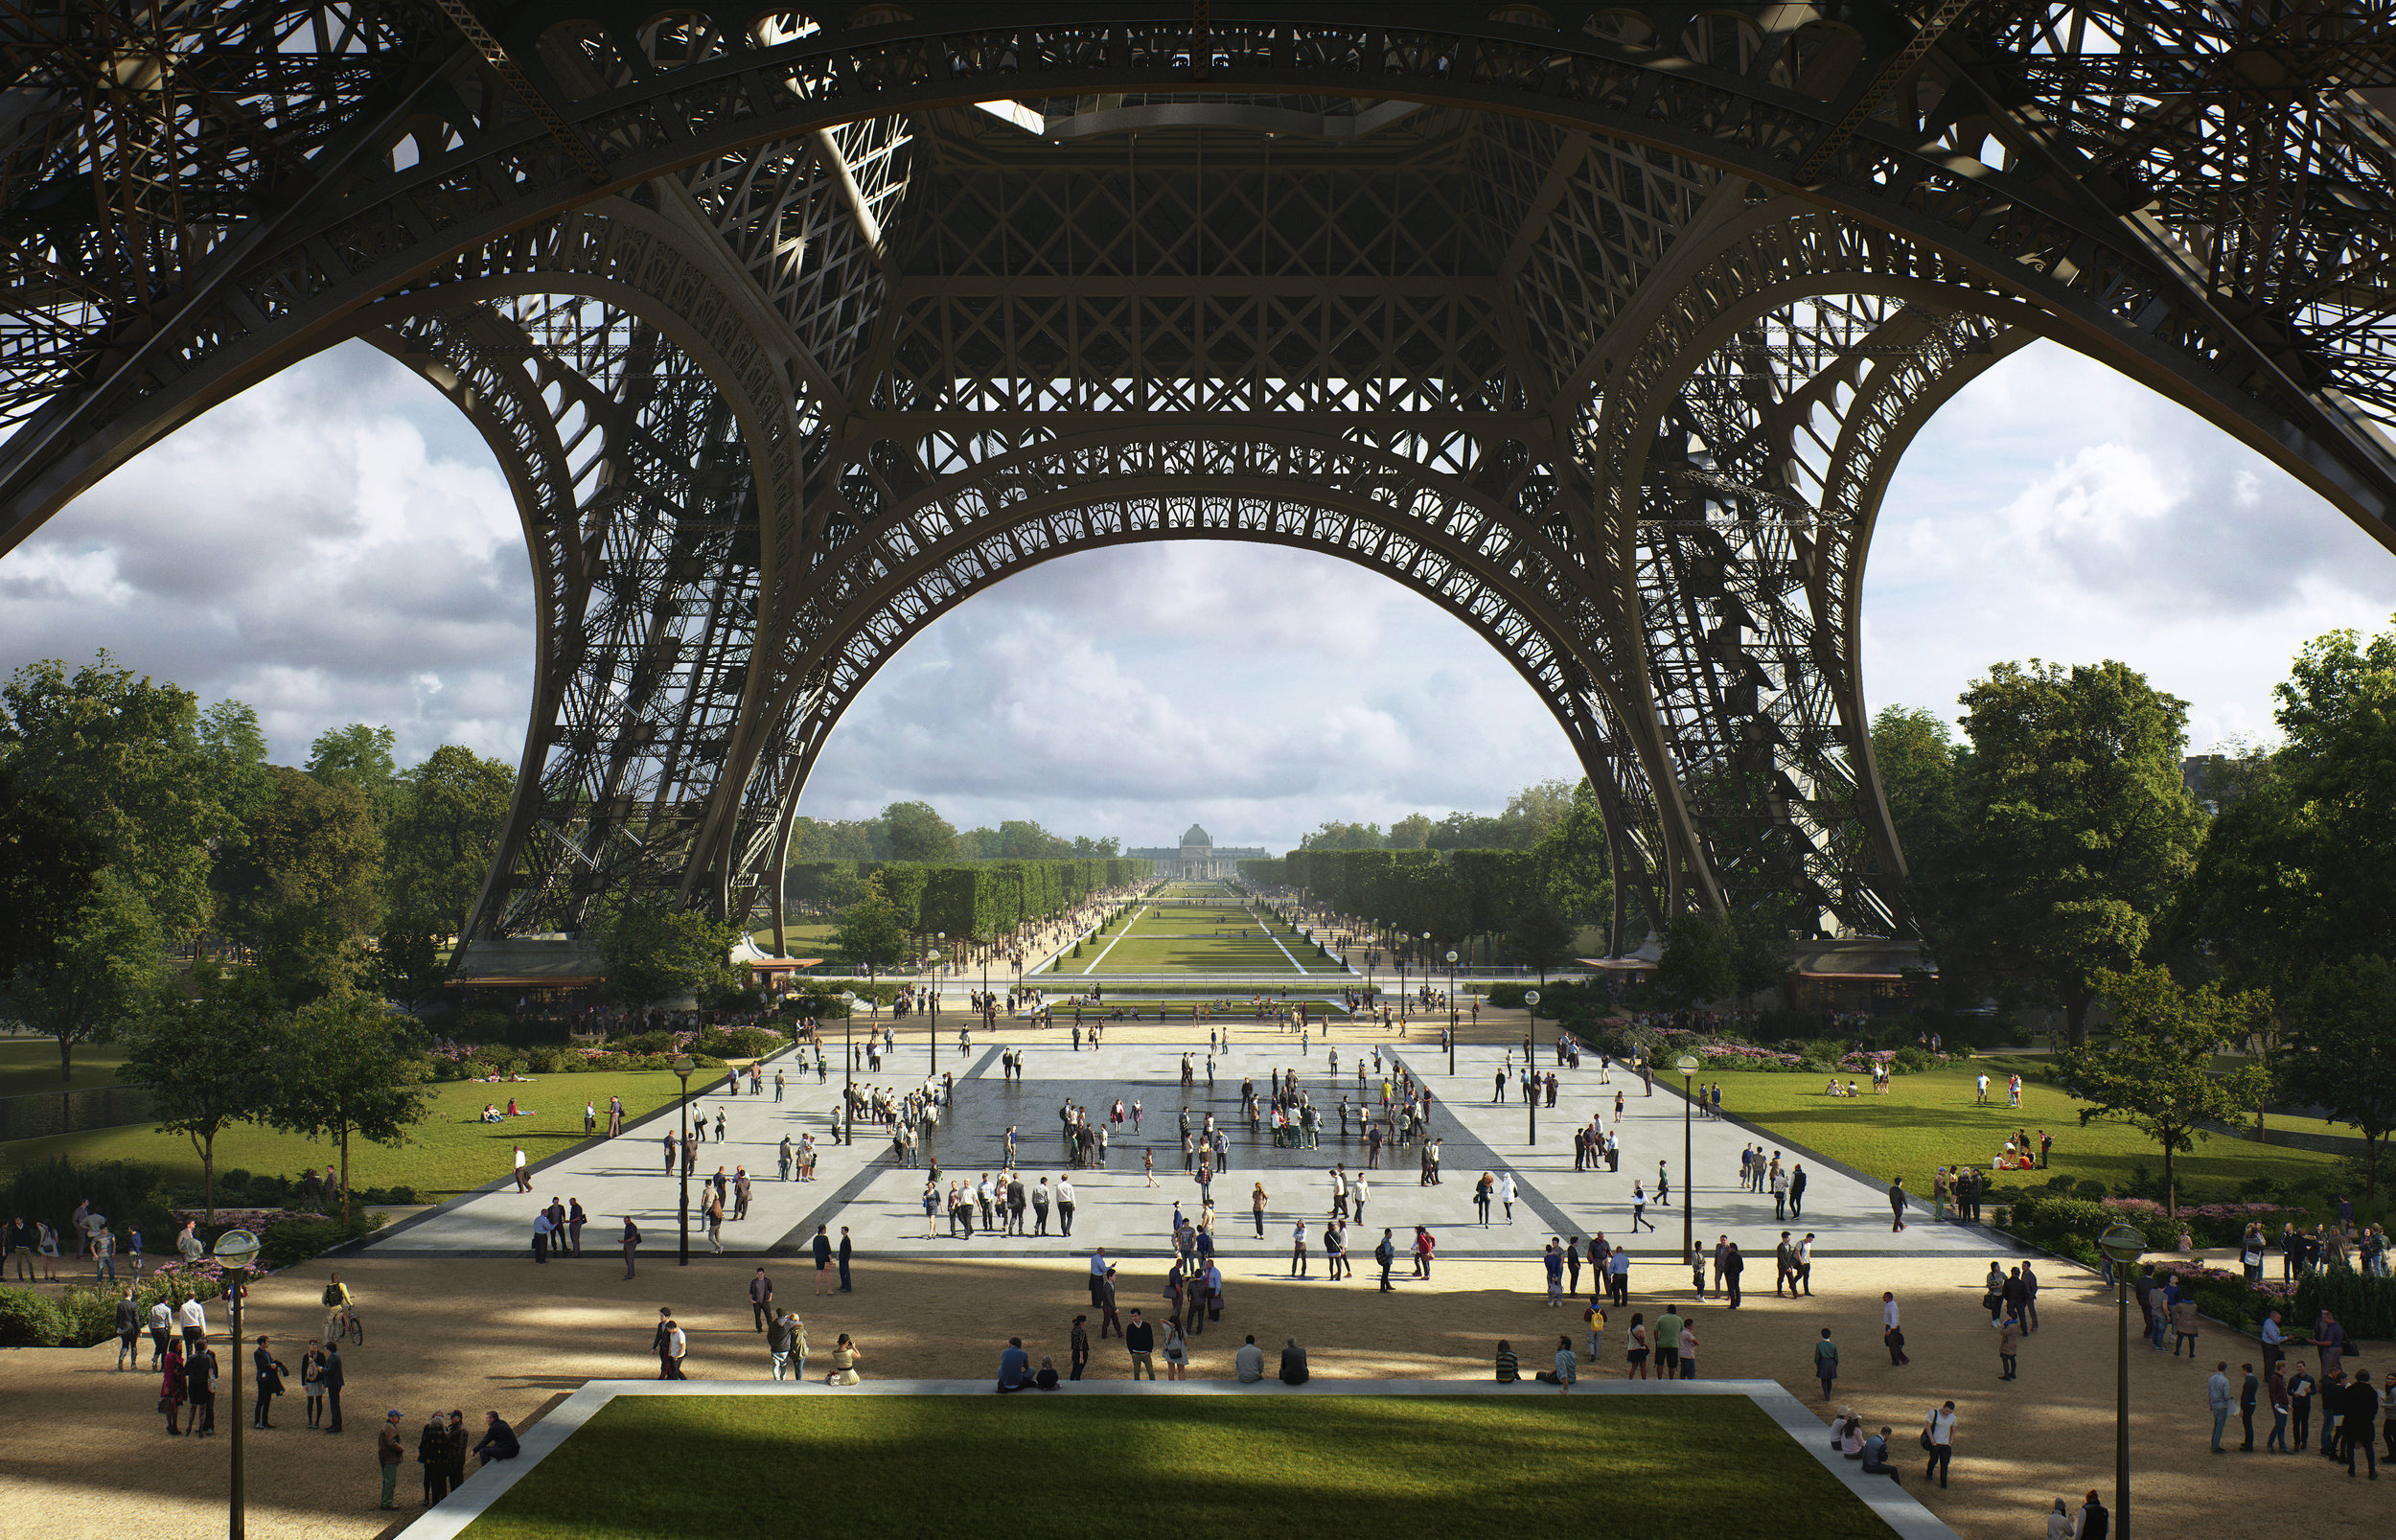 The Eiffel Tower will be surrounded by a giant new park. © MIR for GP+B